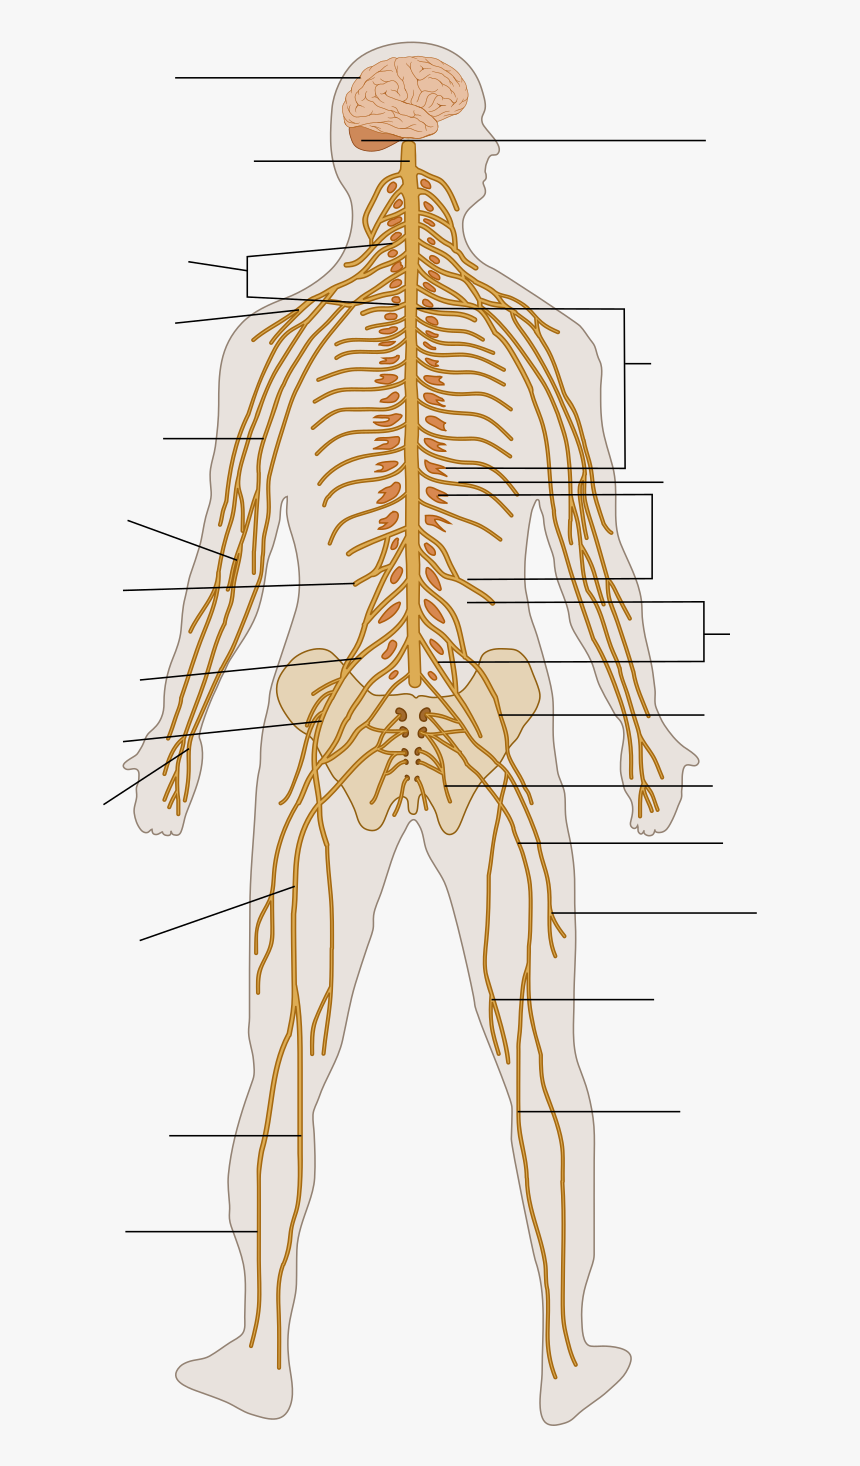 Lower Body Nervous System, HD Png Download, Free Download